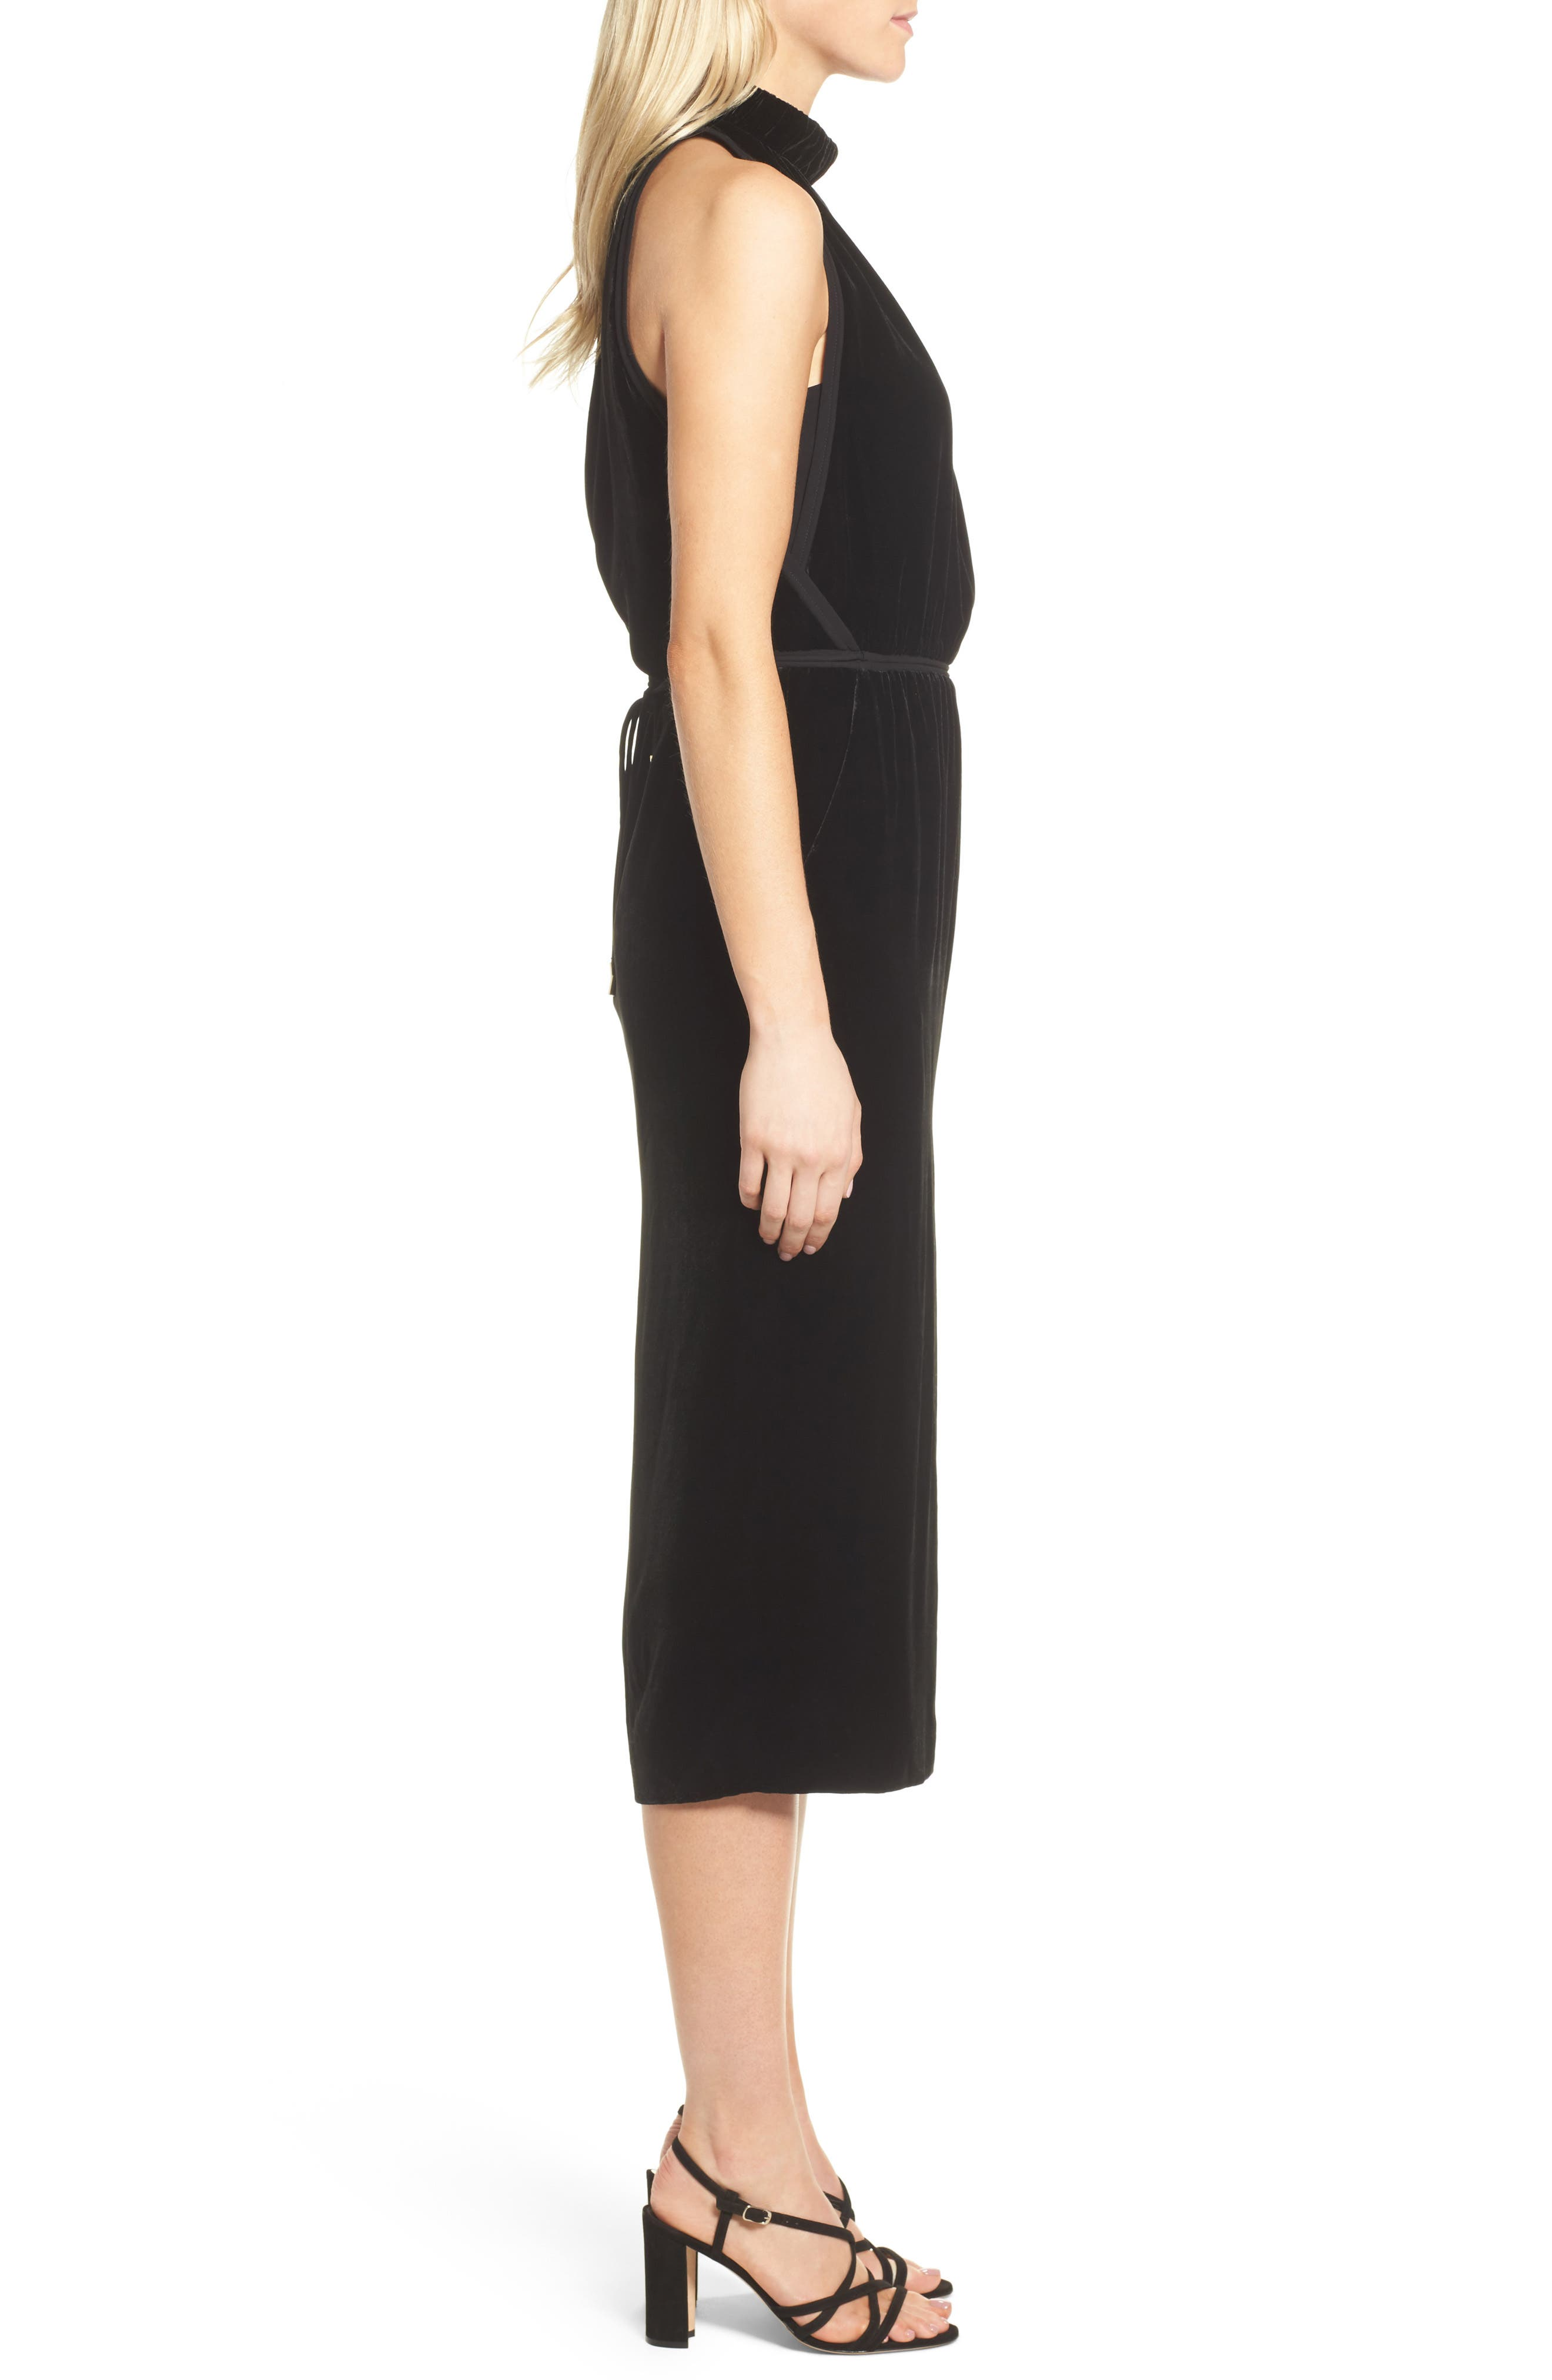 Difosia Velvet Midi Dress,                             Alternate thumbnail 3, color,                             001